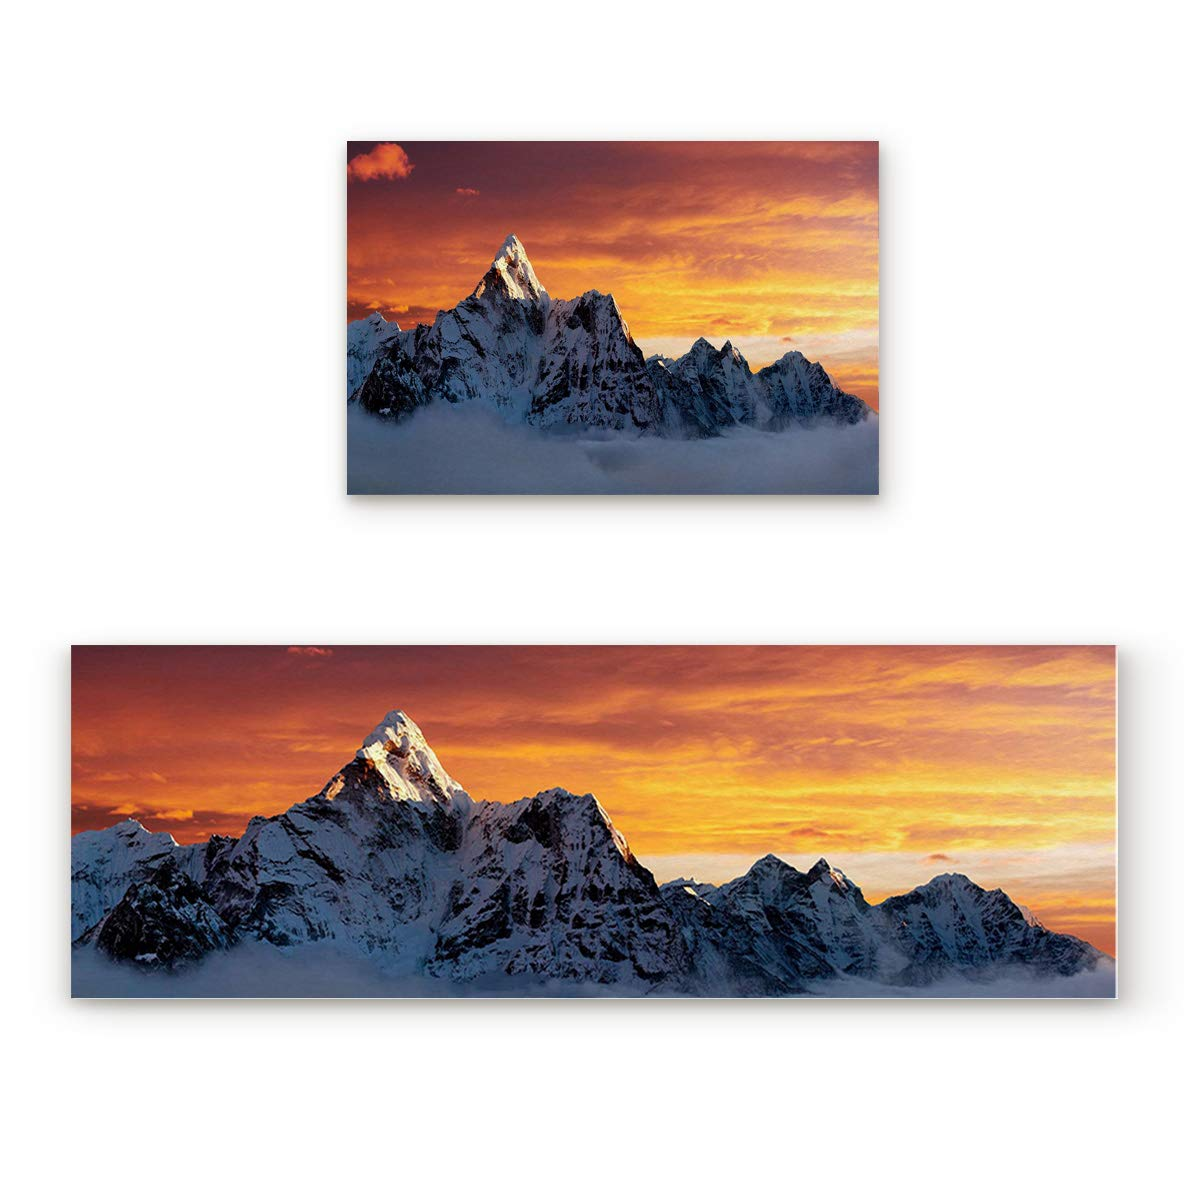 """Kitchen Rugs Sets 2 Piece Floor Mats the Summit of Mount Everest Under Sunset Doormat Non-Slip Rubber Backing Area Rugs Washable Carpet Inside Door Mat Pad Sets (23.6"""" x 35.4""""+23.6"""" x 70.9"""")"""